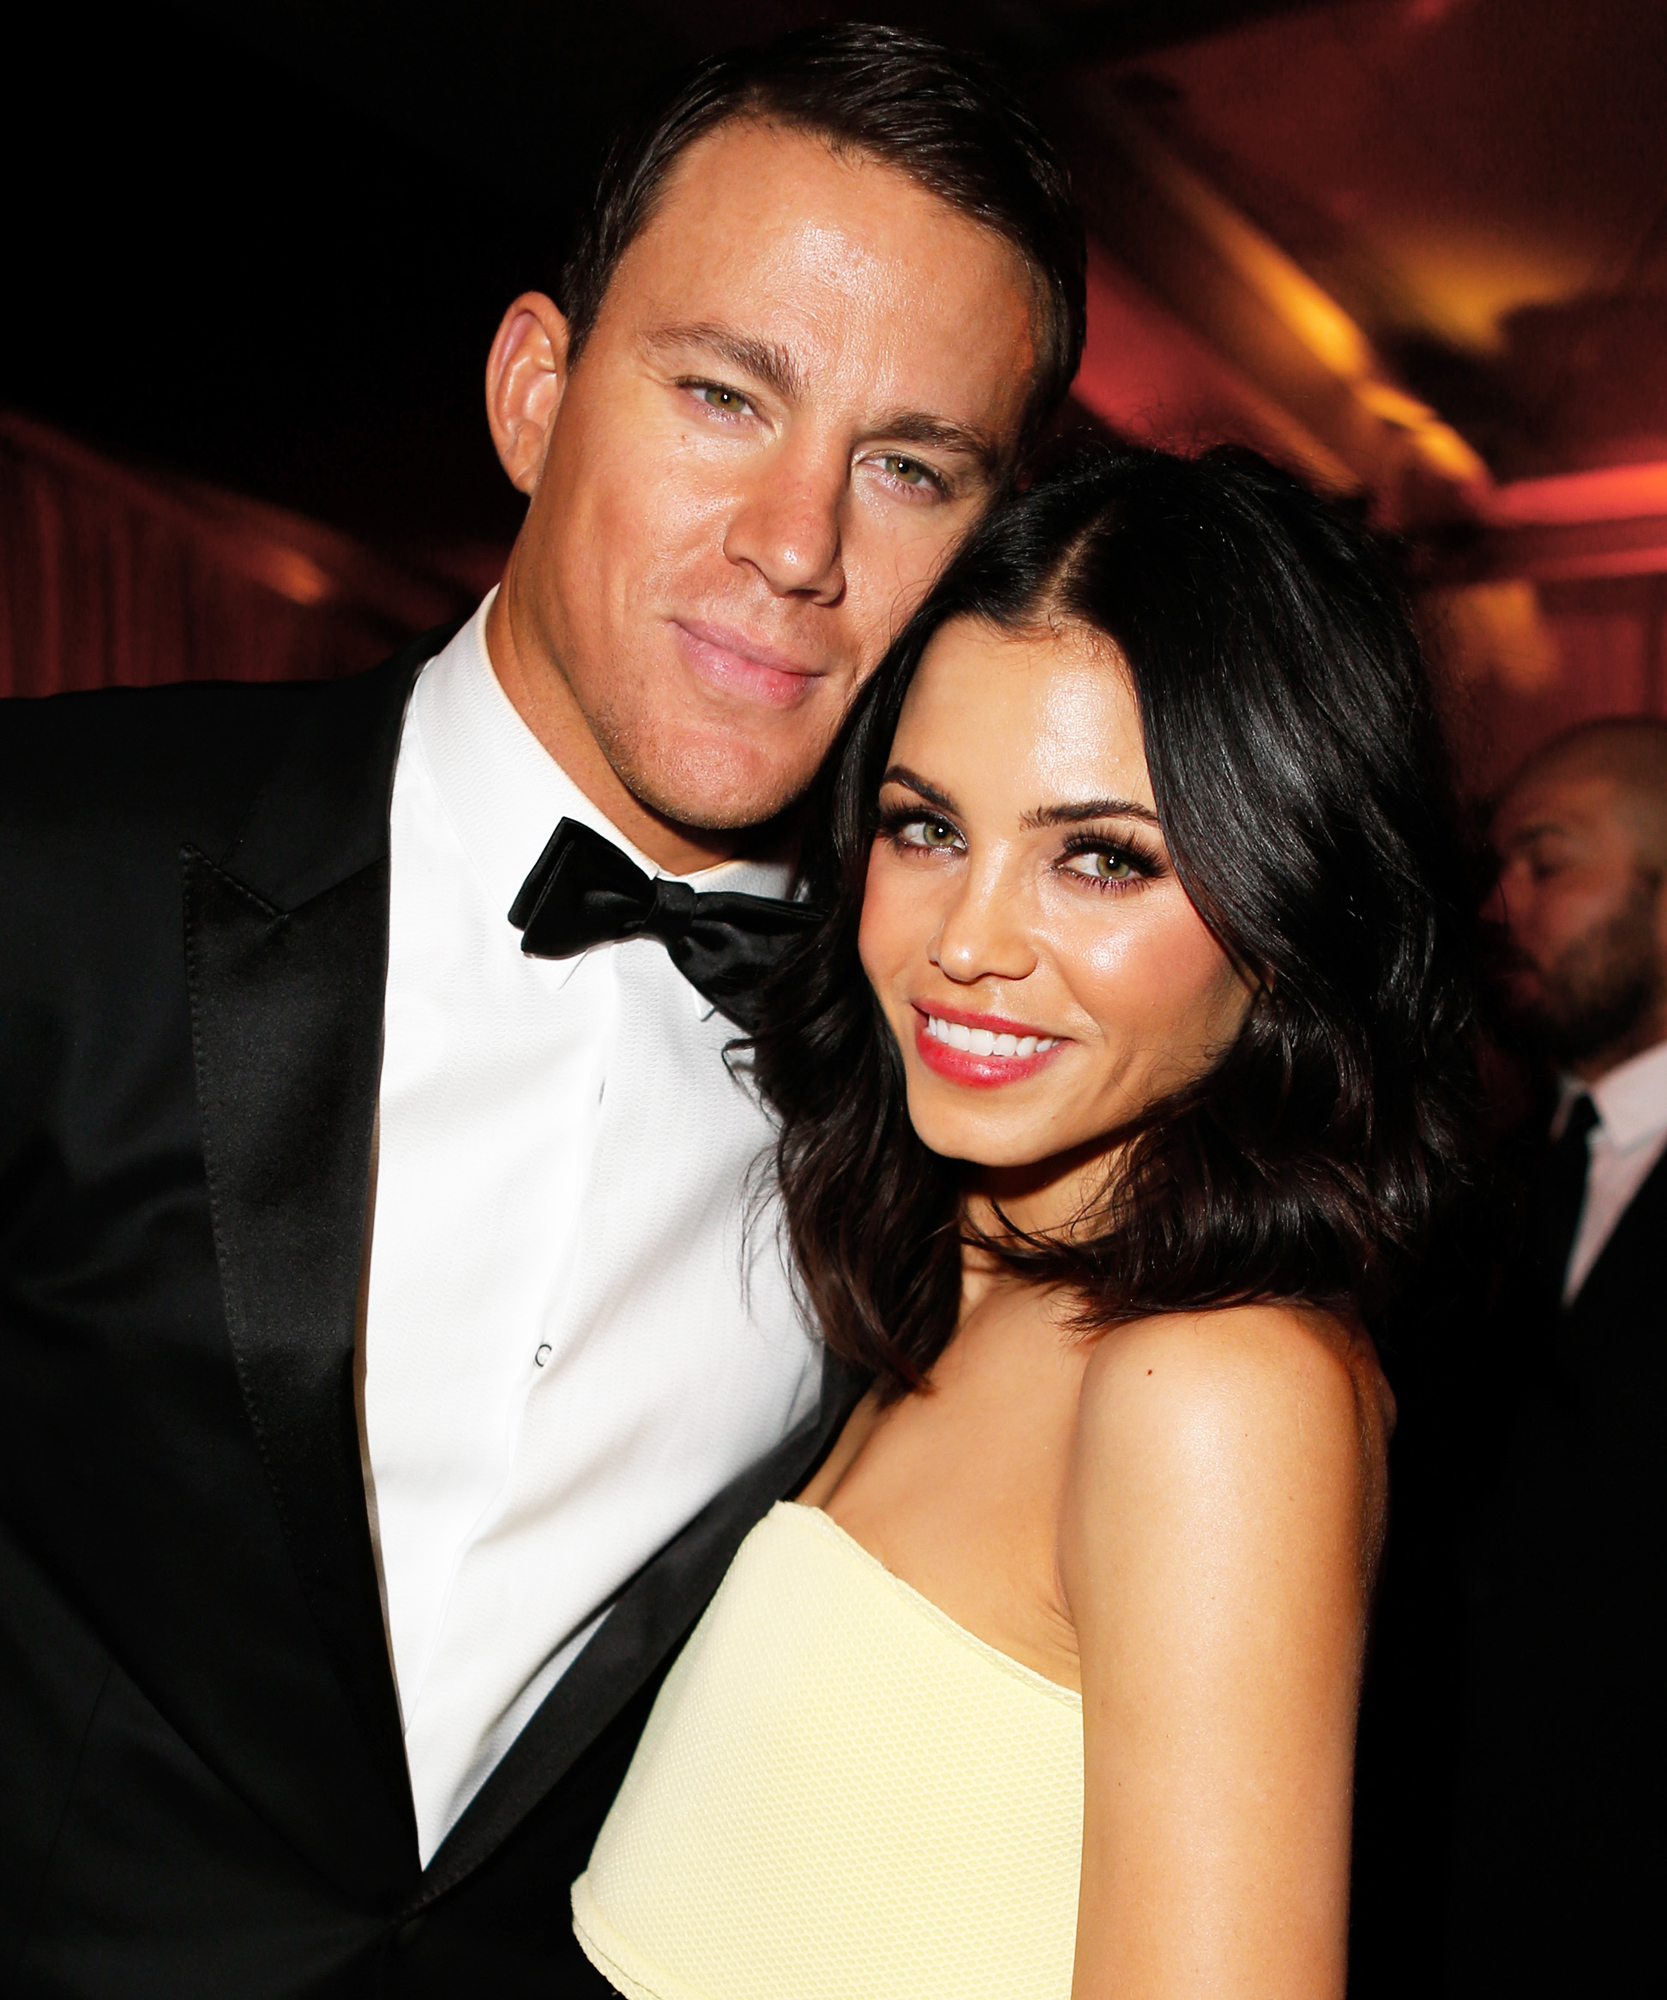 """Jenna Dewan Just Explained Why Her Breakup with Channing Tatum Is """"A Positive Thing"""""""